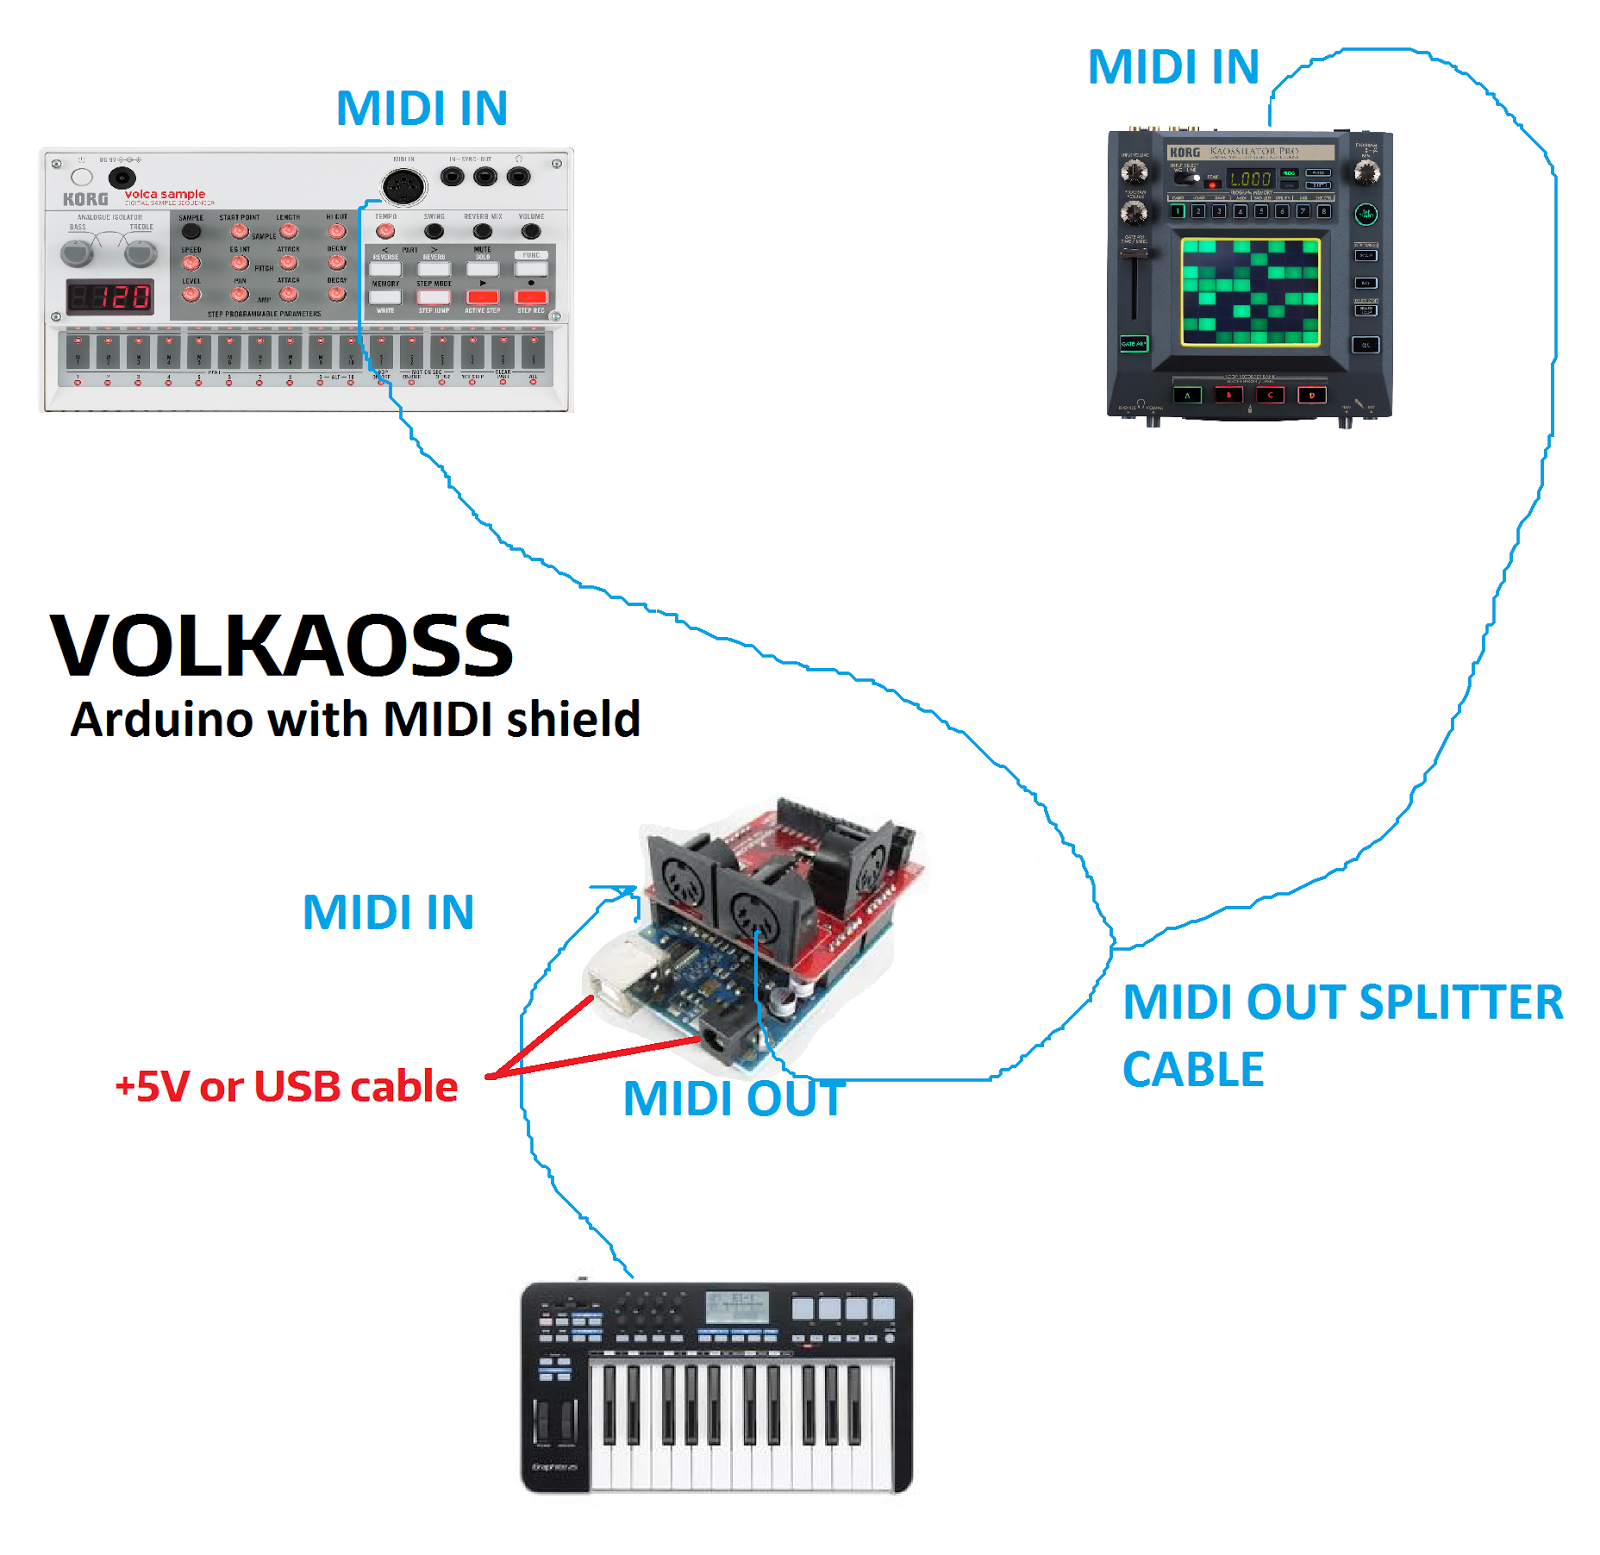 Volkaoss Arduino Firmware Beta1 Is Here Volcasample And Midi Cable Wiring You Need A Splitter To Control The 2 Devices At Same Time Otherwise Simply Use Classic If Own Only One Of These